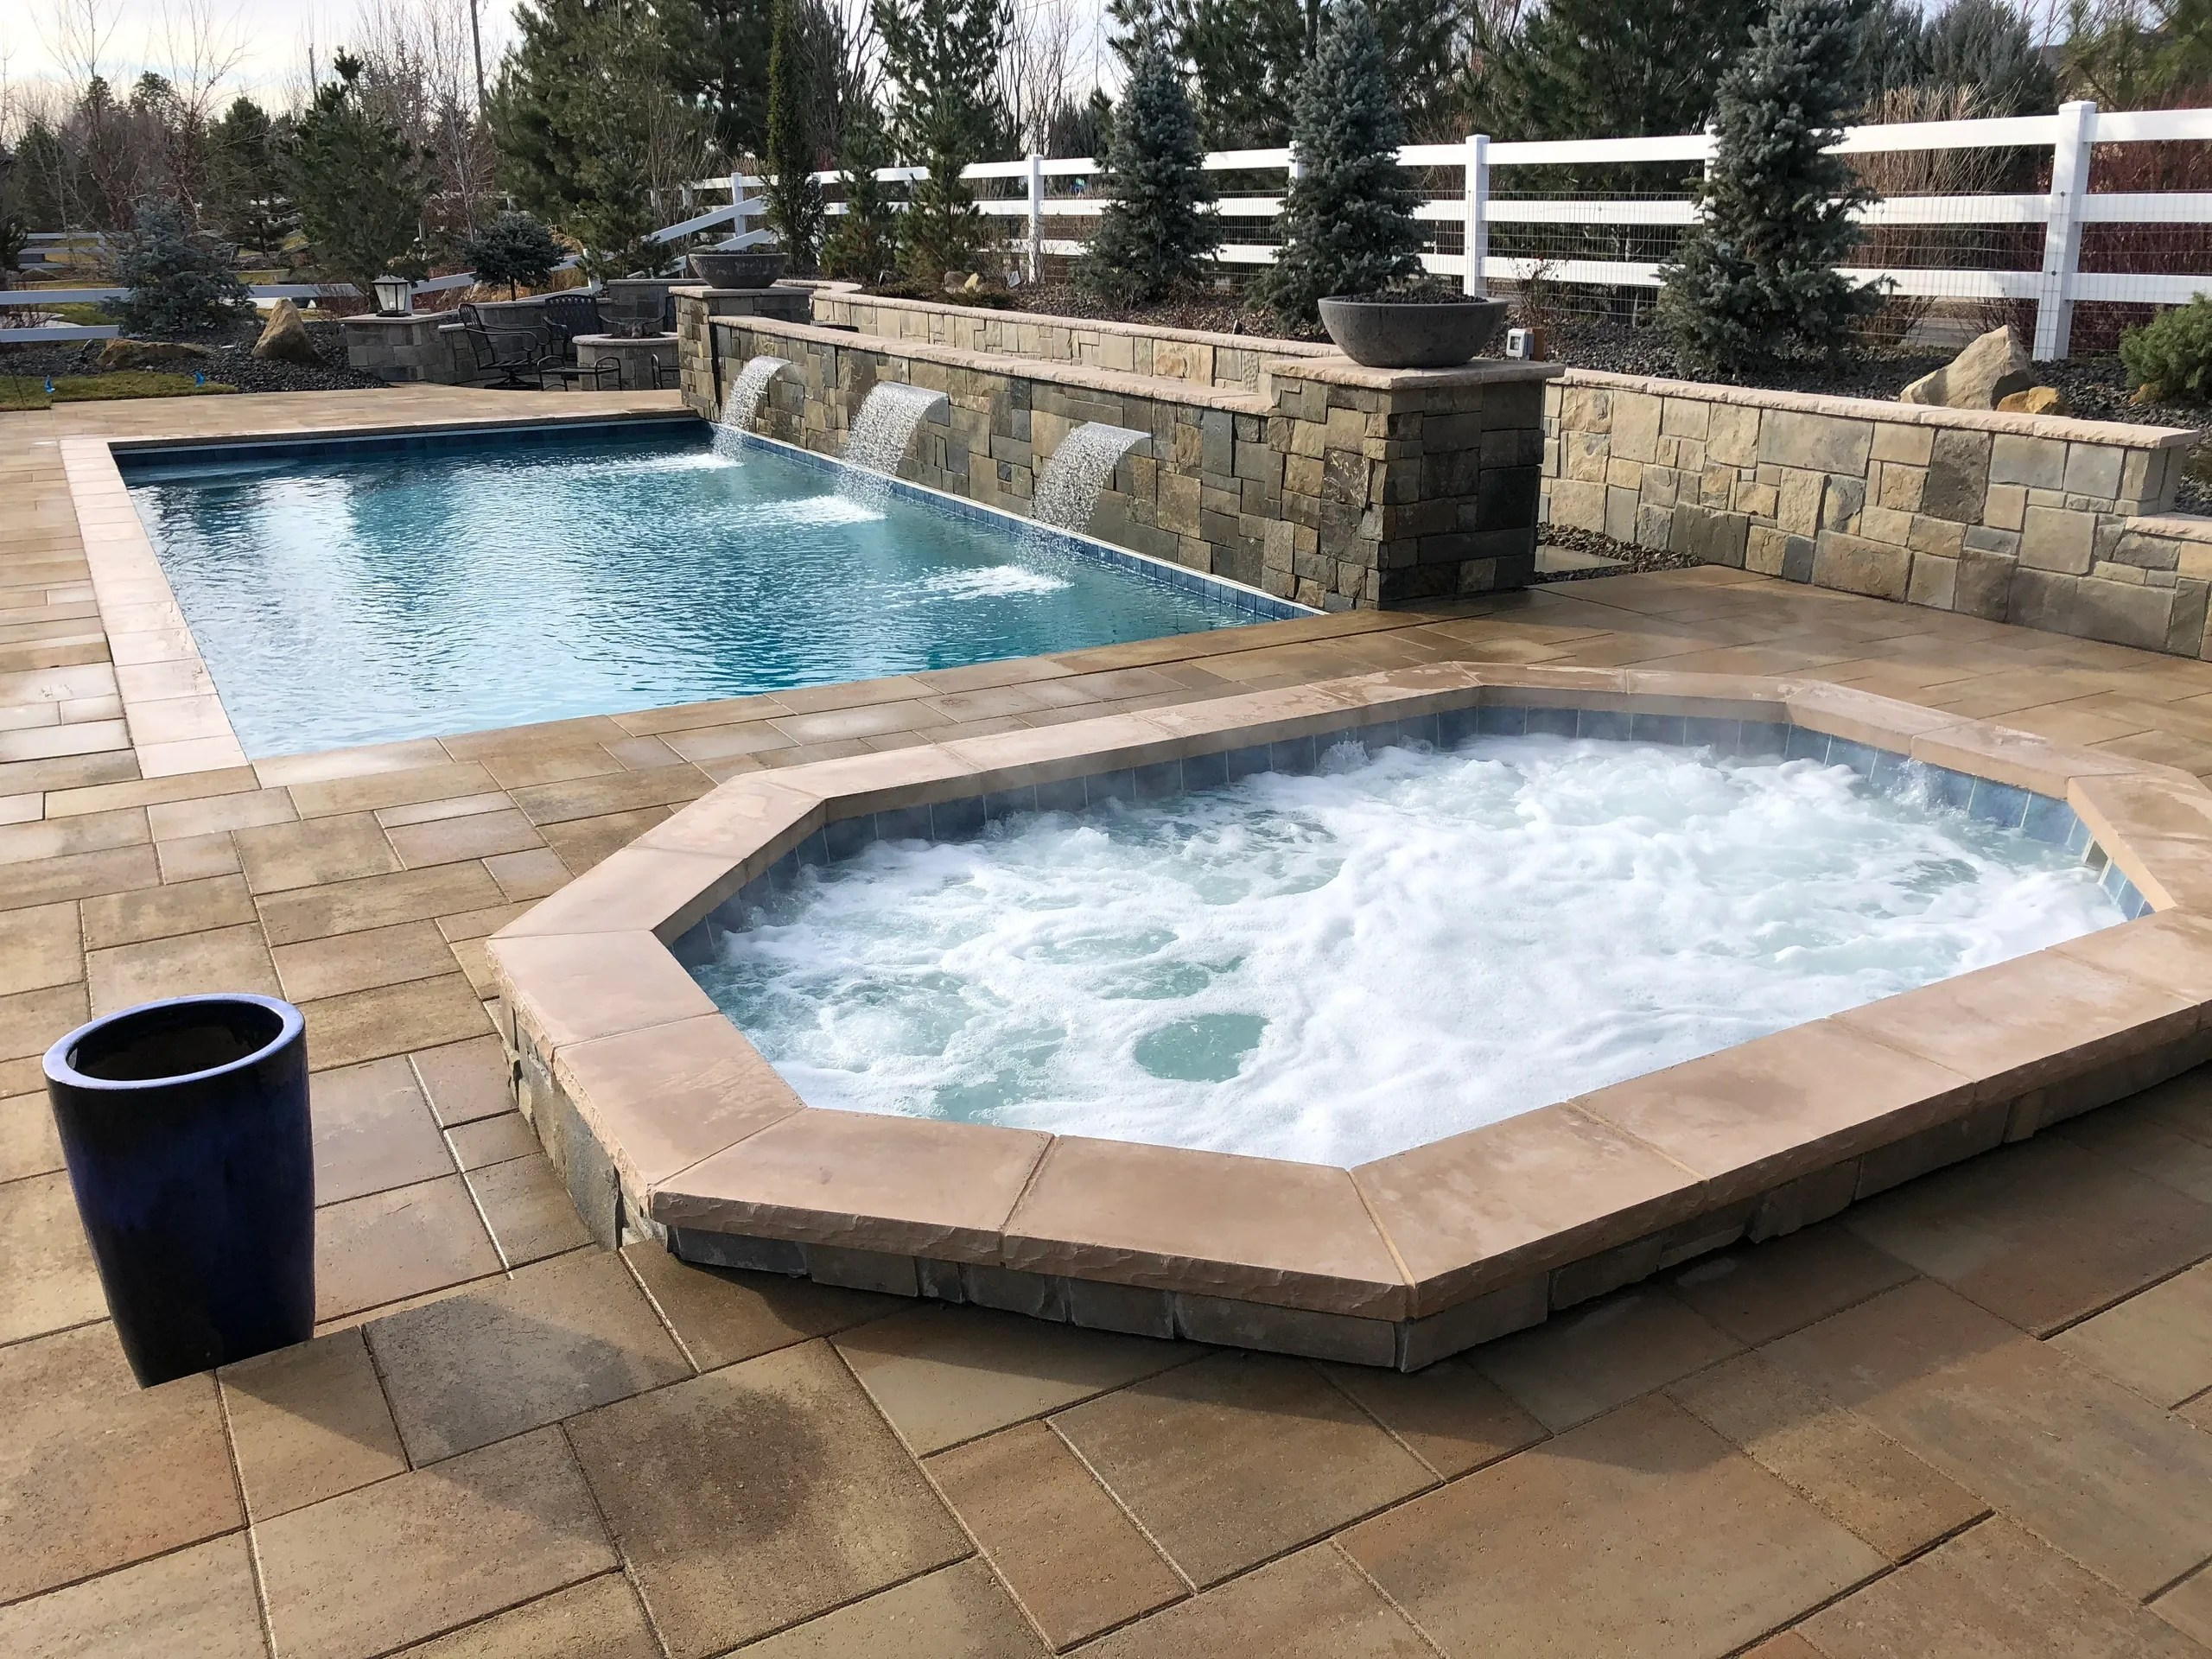 Jacuzzi Pool Service Liquid Fx Pool And Spa Swimming Pool Service Hot Tub